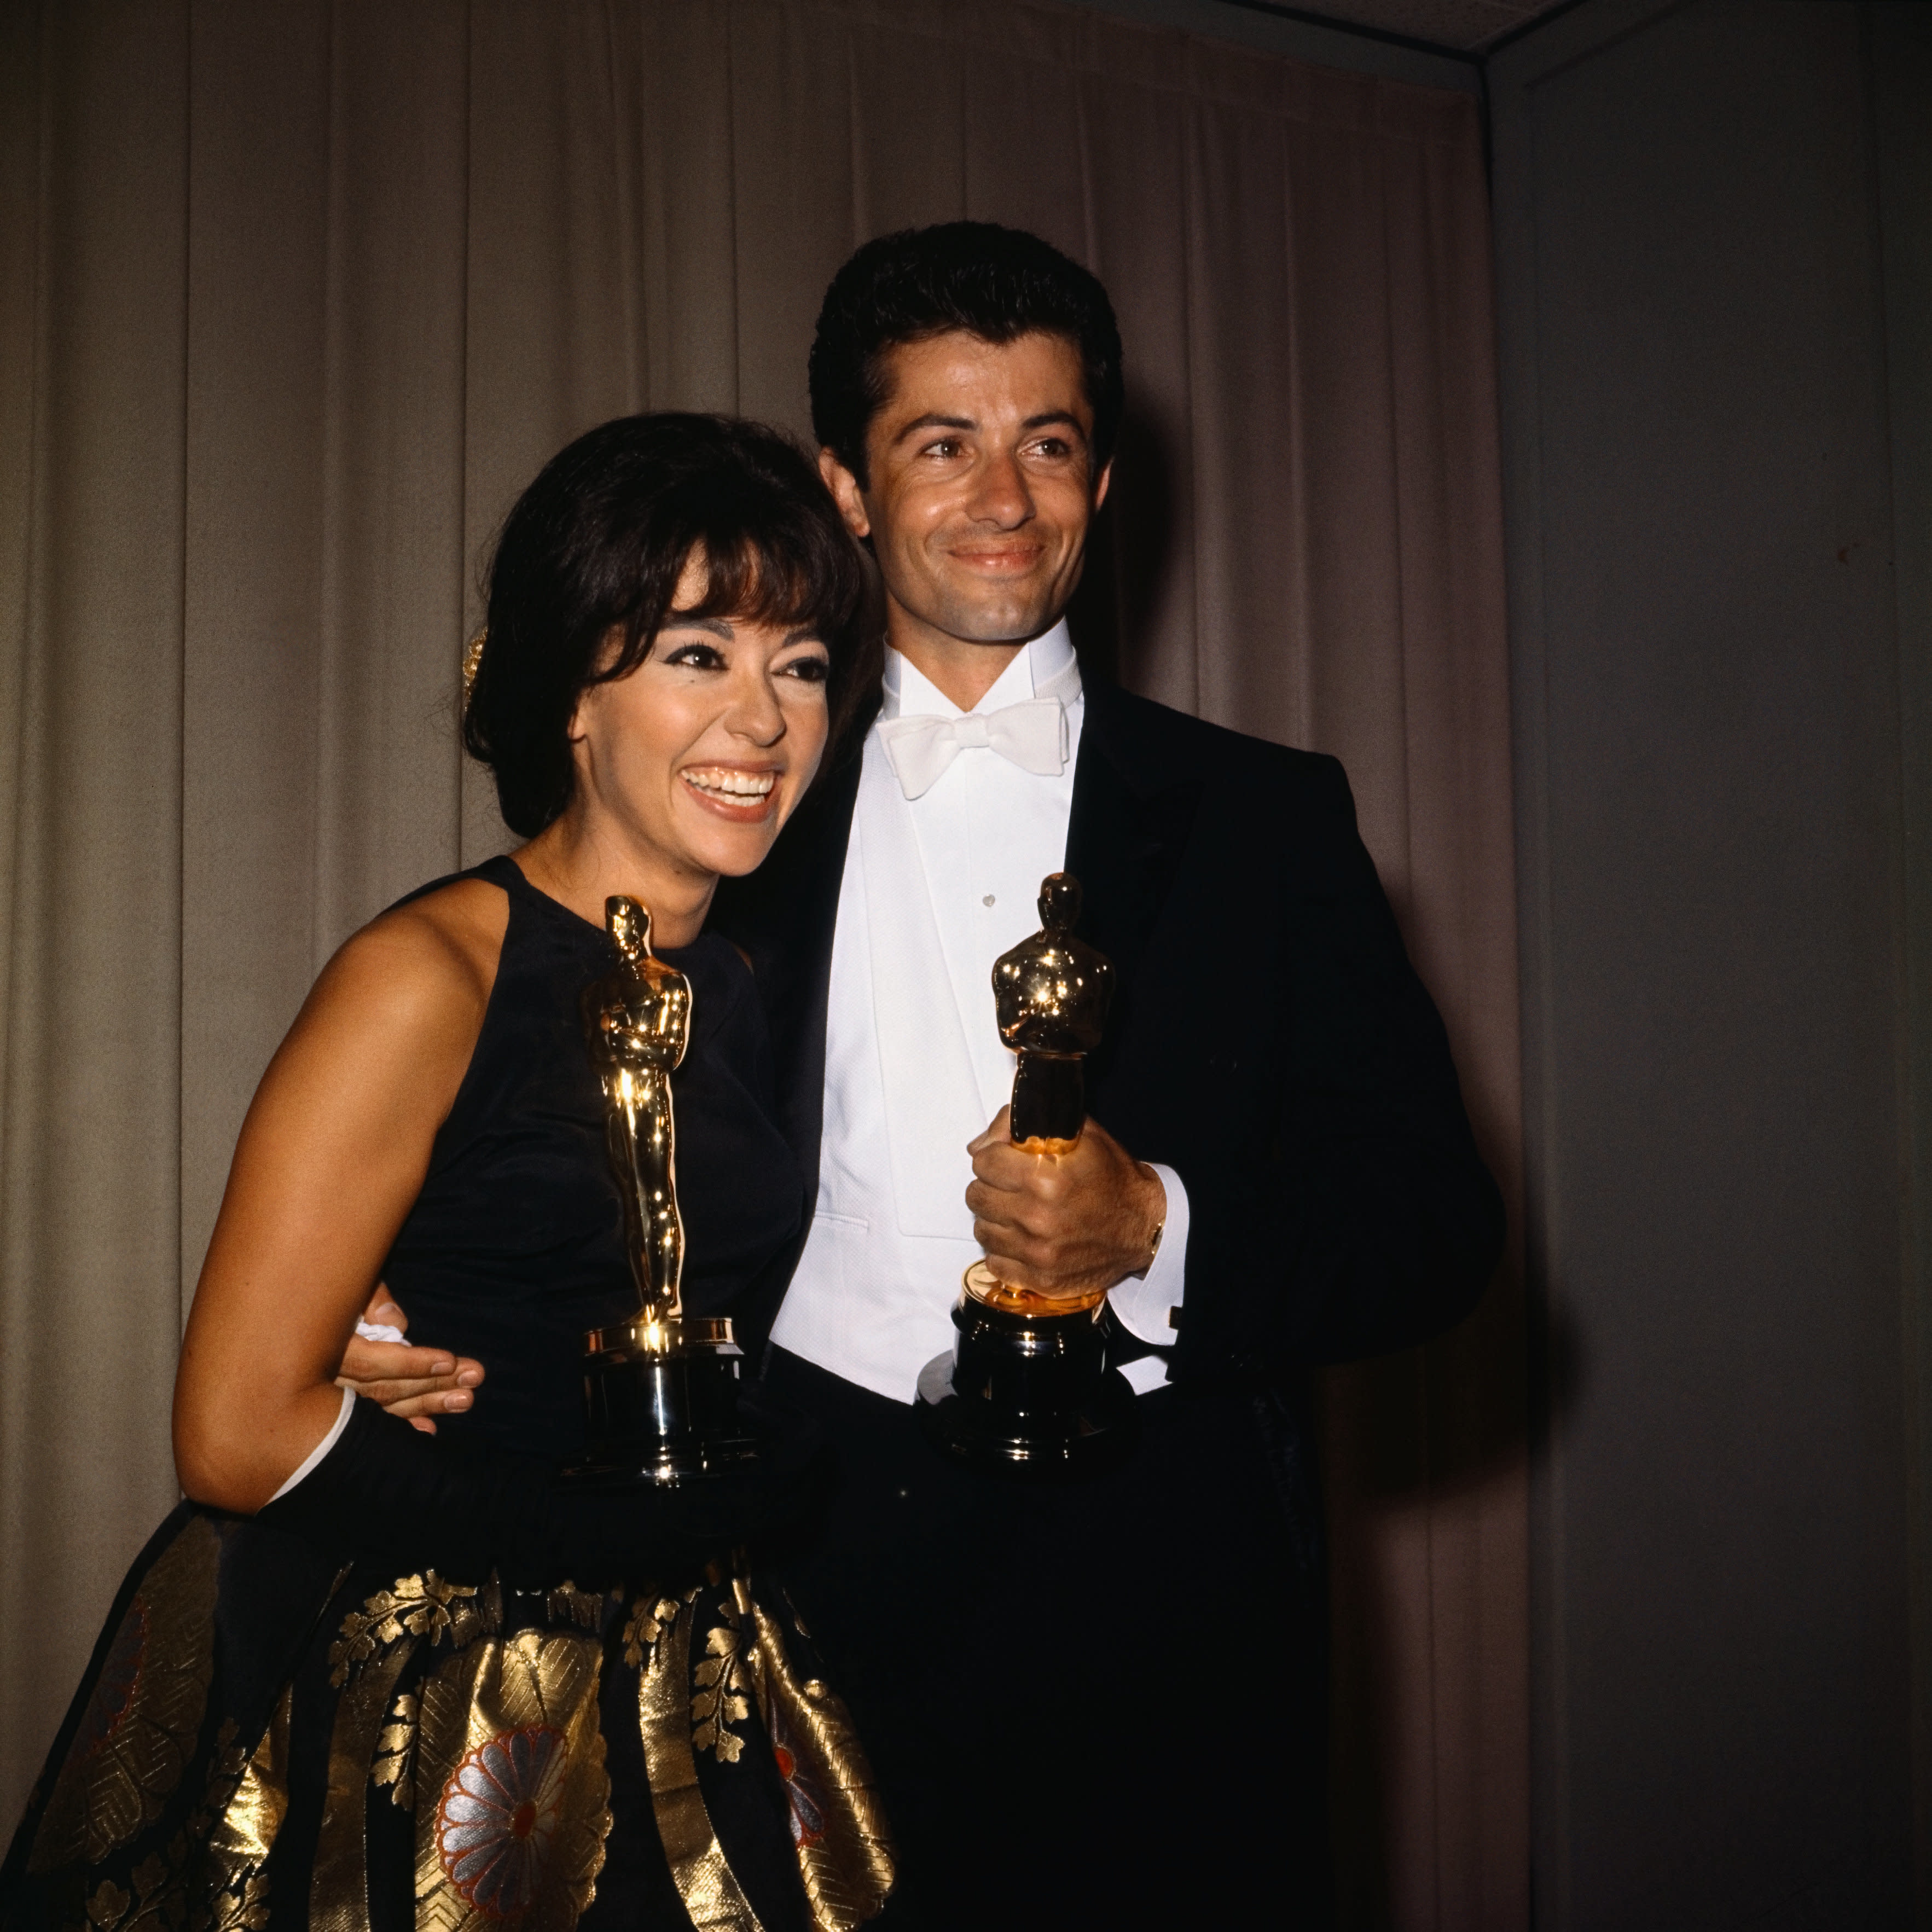 George Chakiris and Moreno are shown as they accept their Academy Awards. (Bettmann via Getty Images)